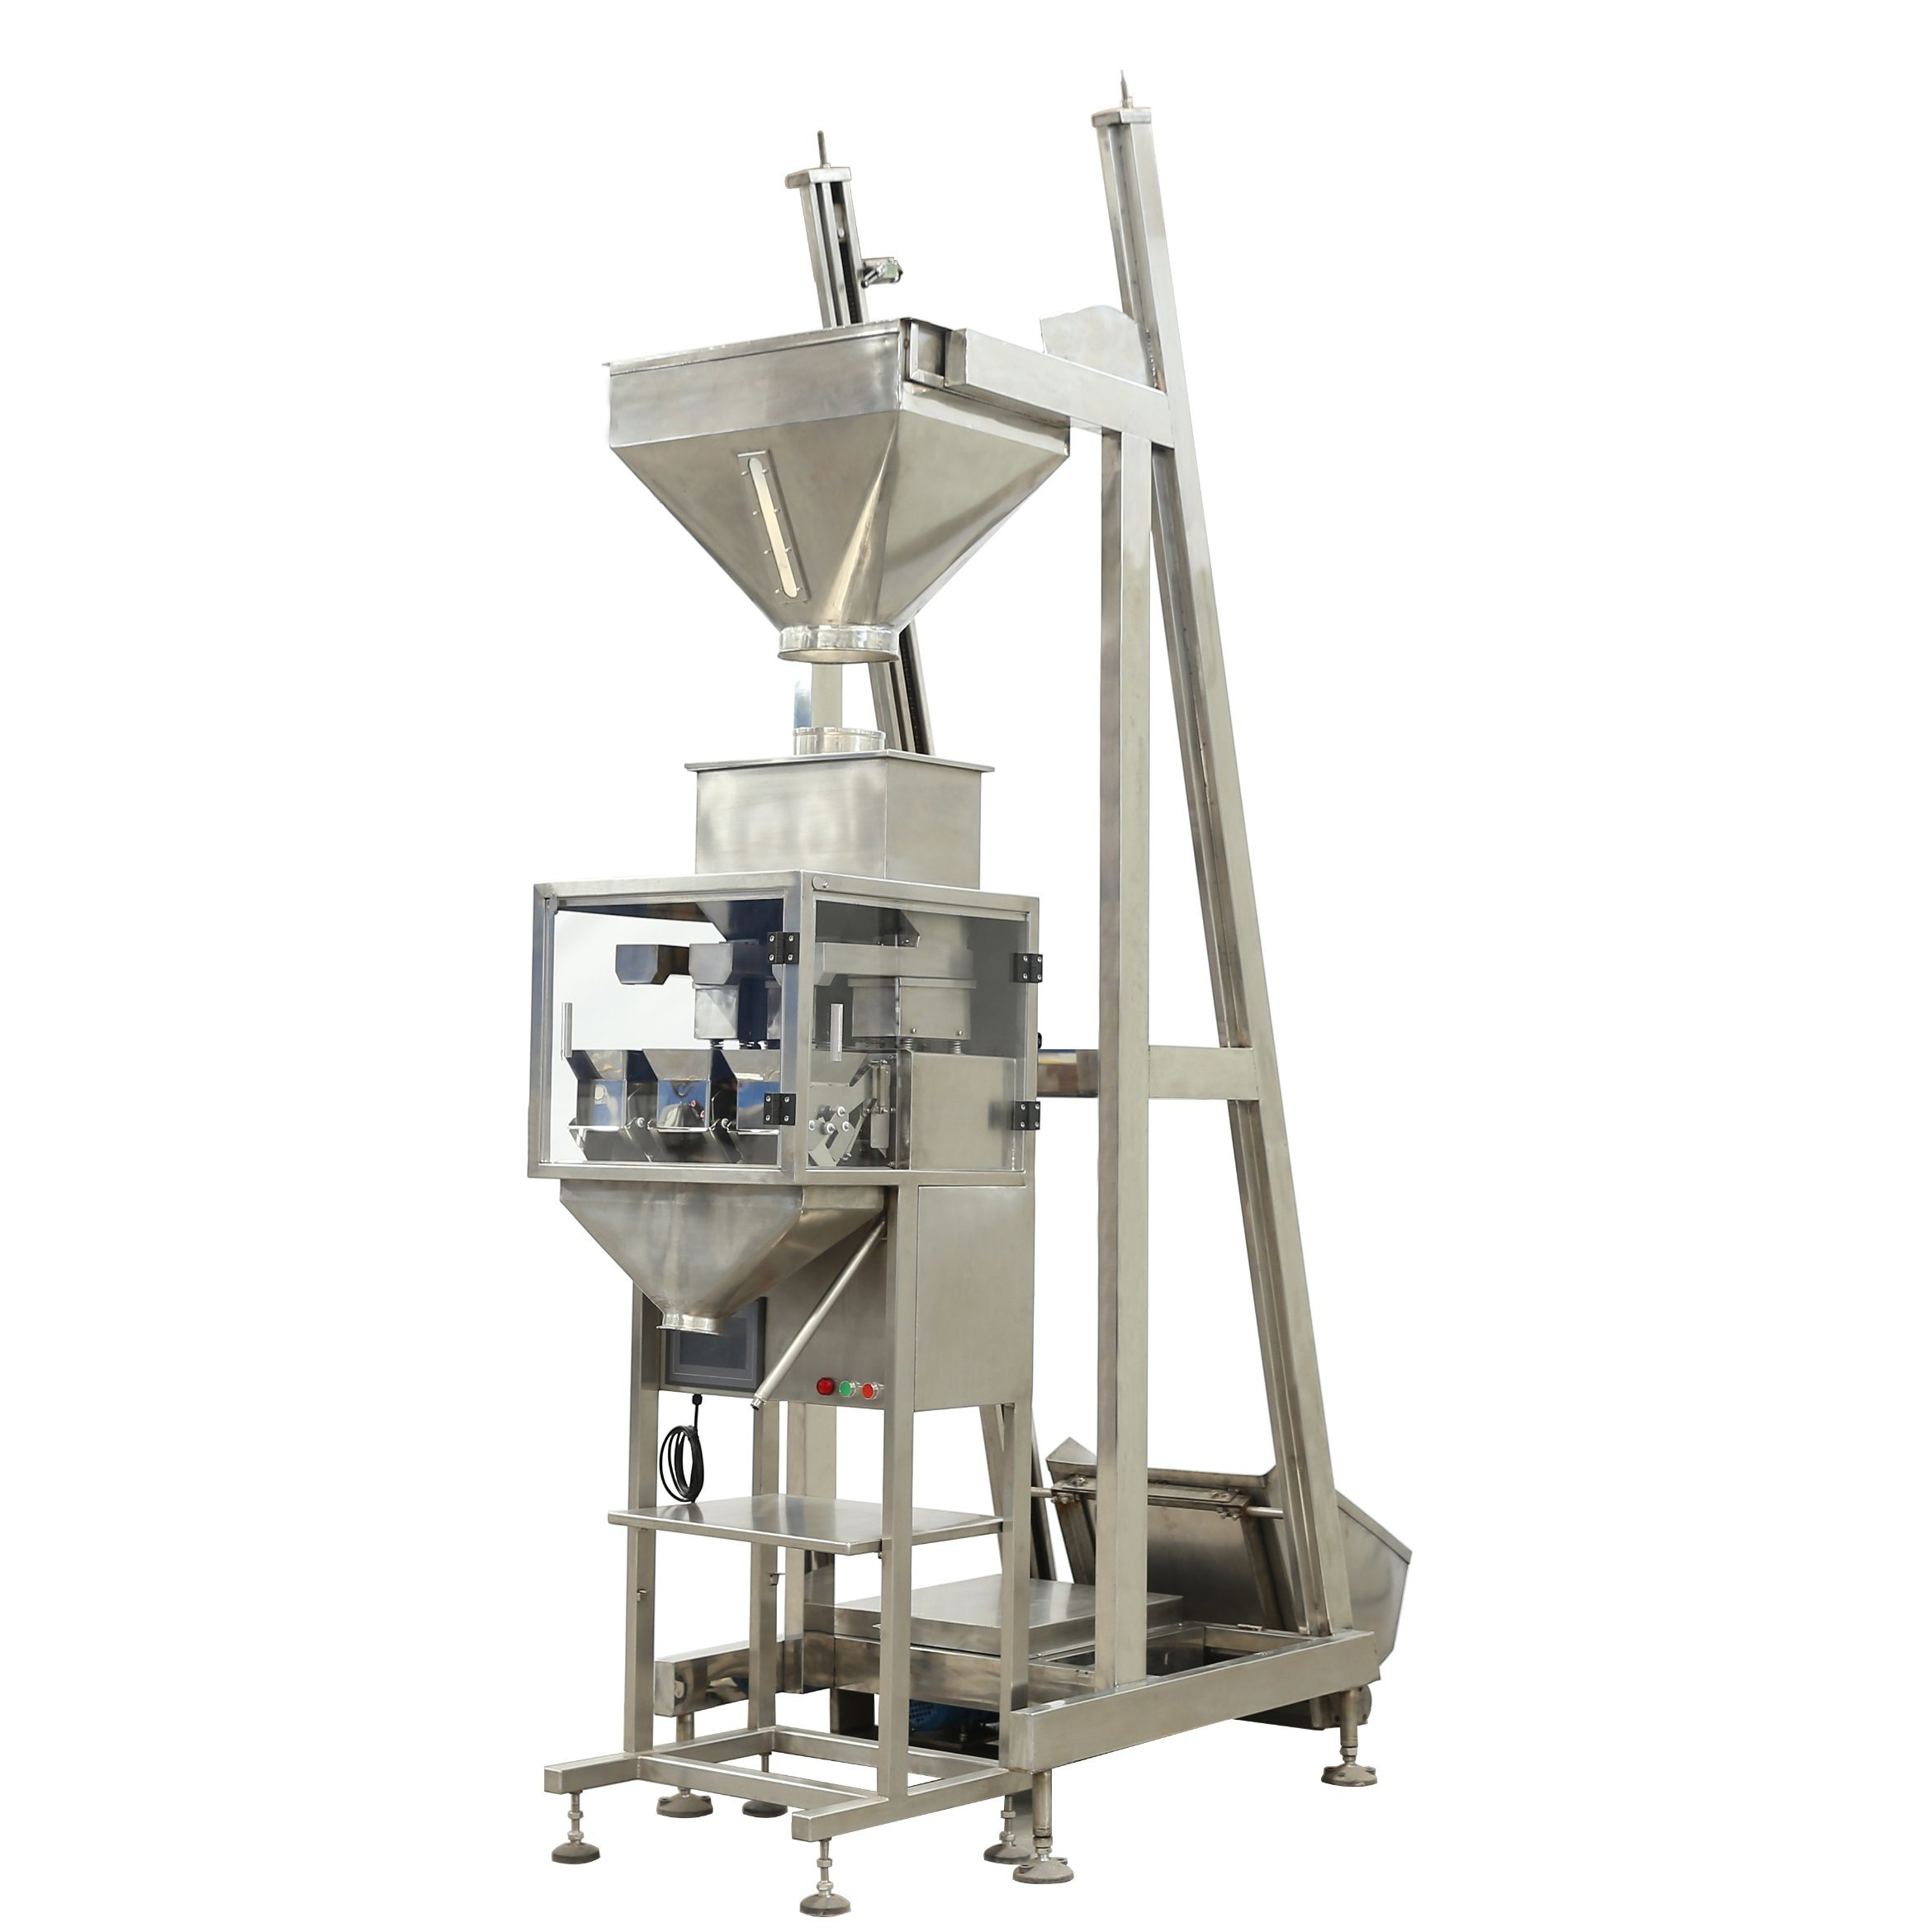 Nuoen The Material Hoist of Automatic Packaging Machine